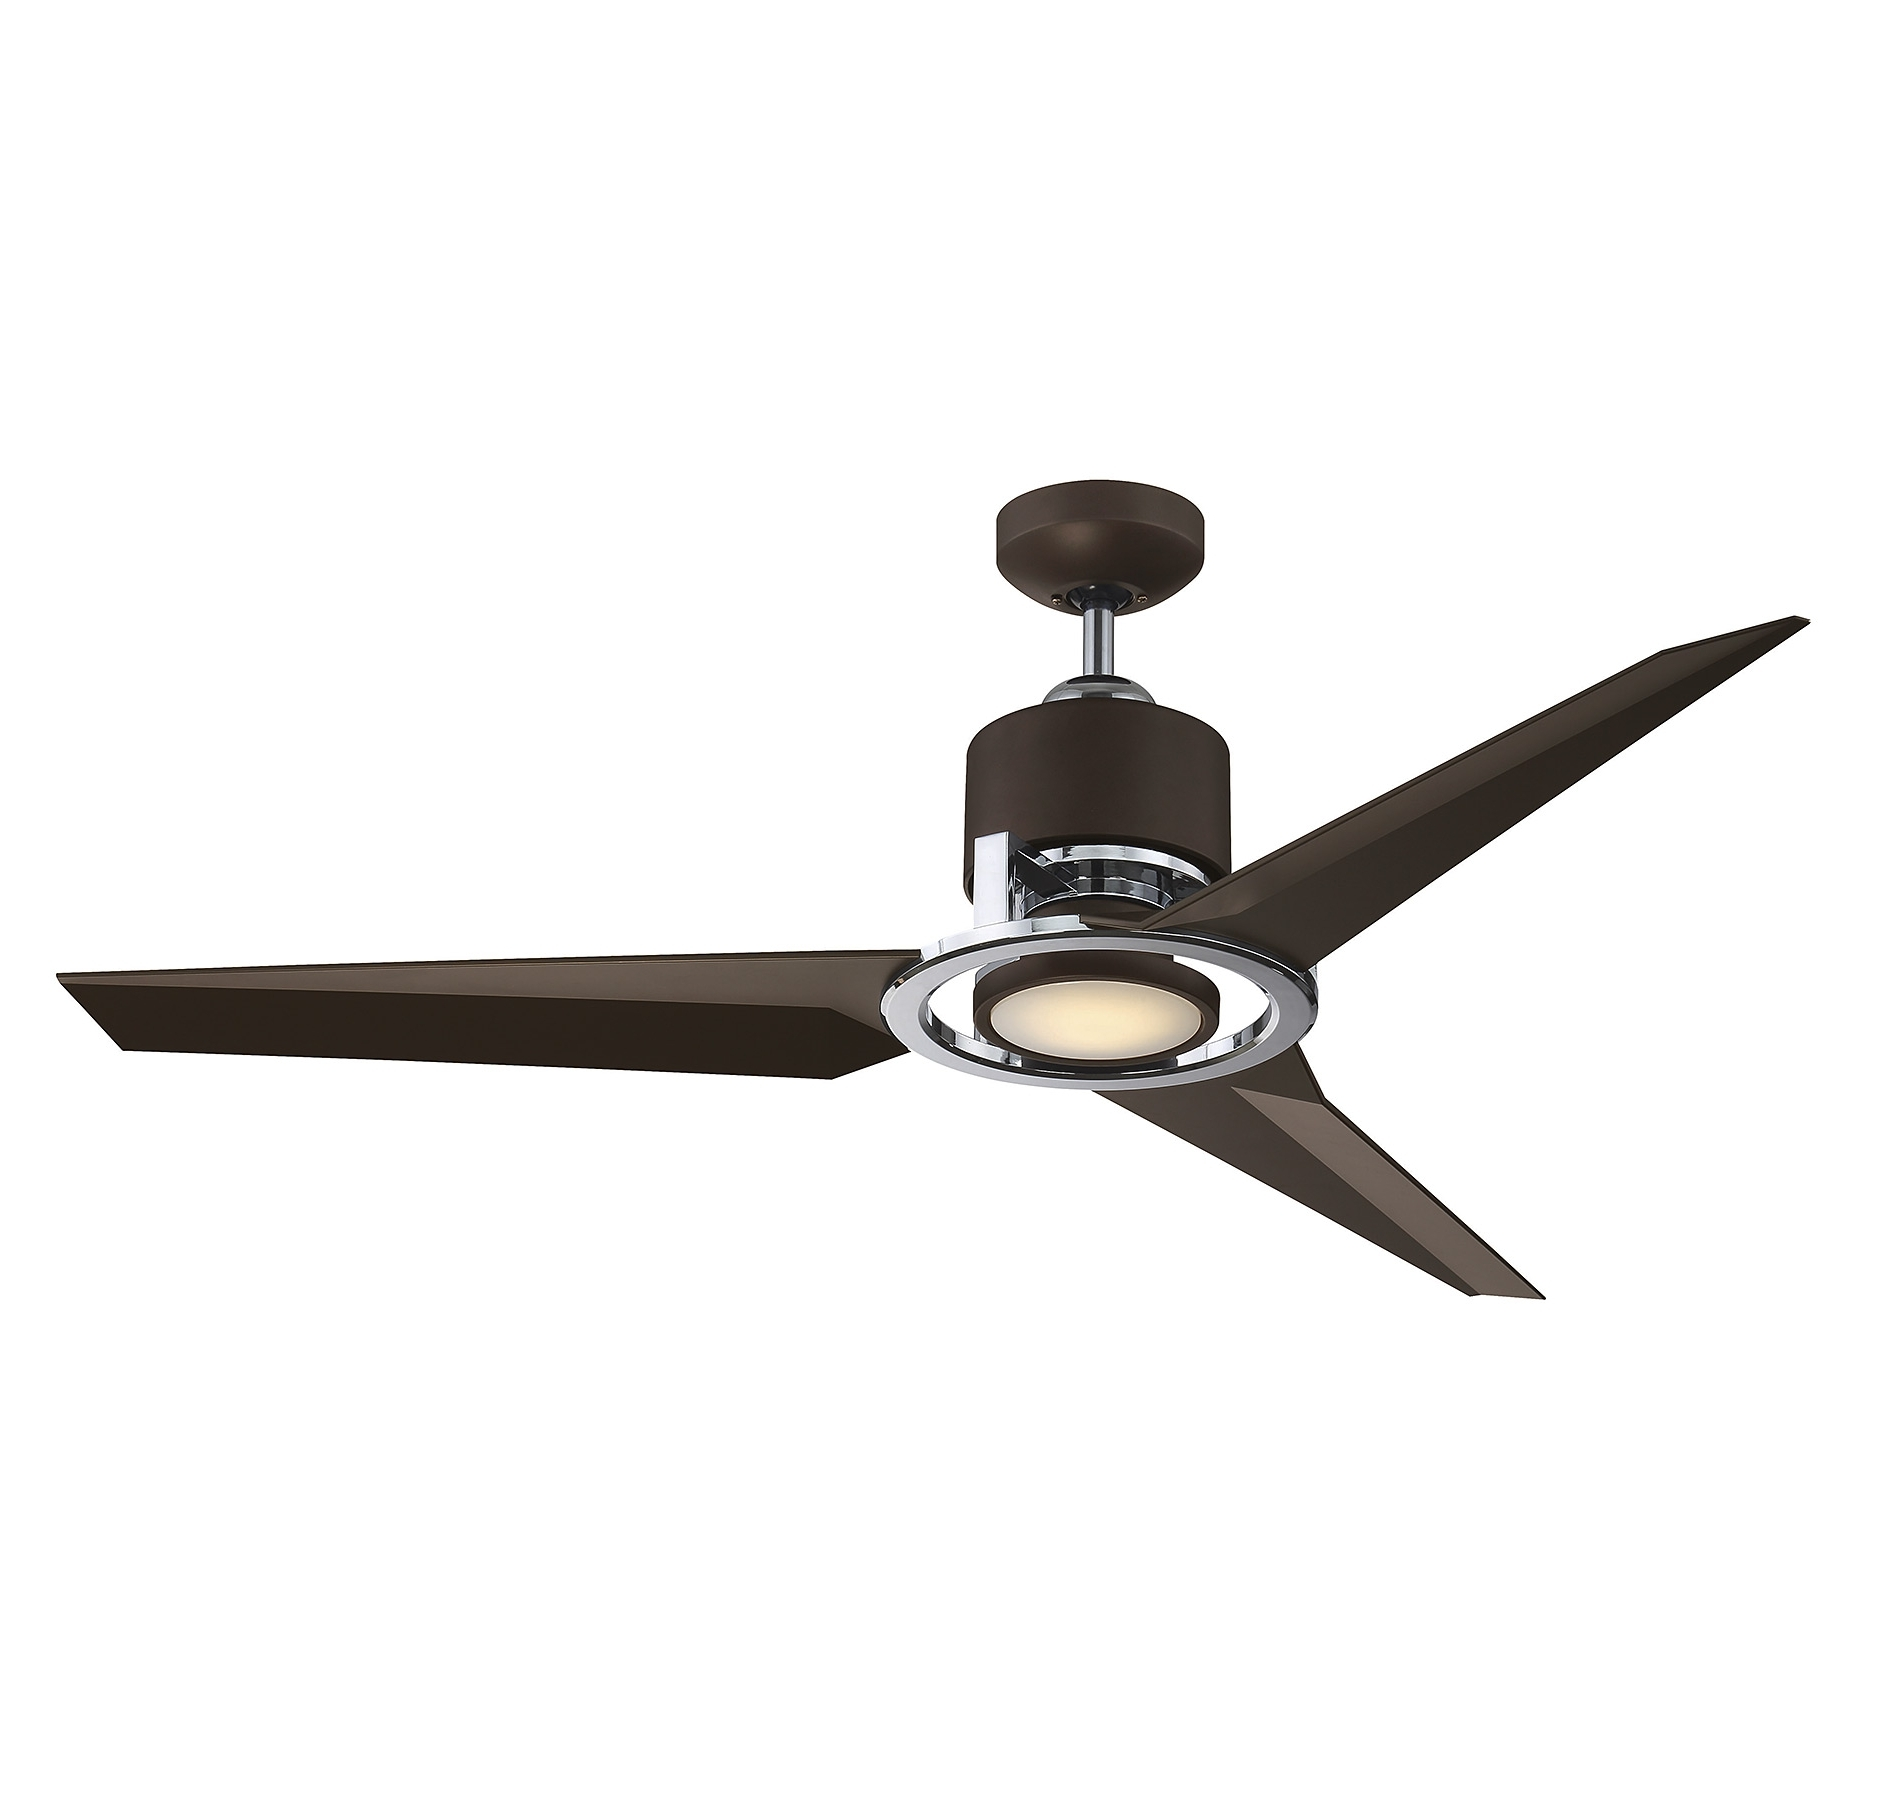 2019 42 Inch Outdoor Ceiling Fans With Regard To 3 Blade Outdoor Ceiling Fan Lighting And Ceiling Fans, 3 Blade (View 1 of 20)